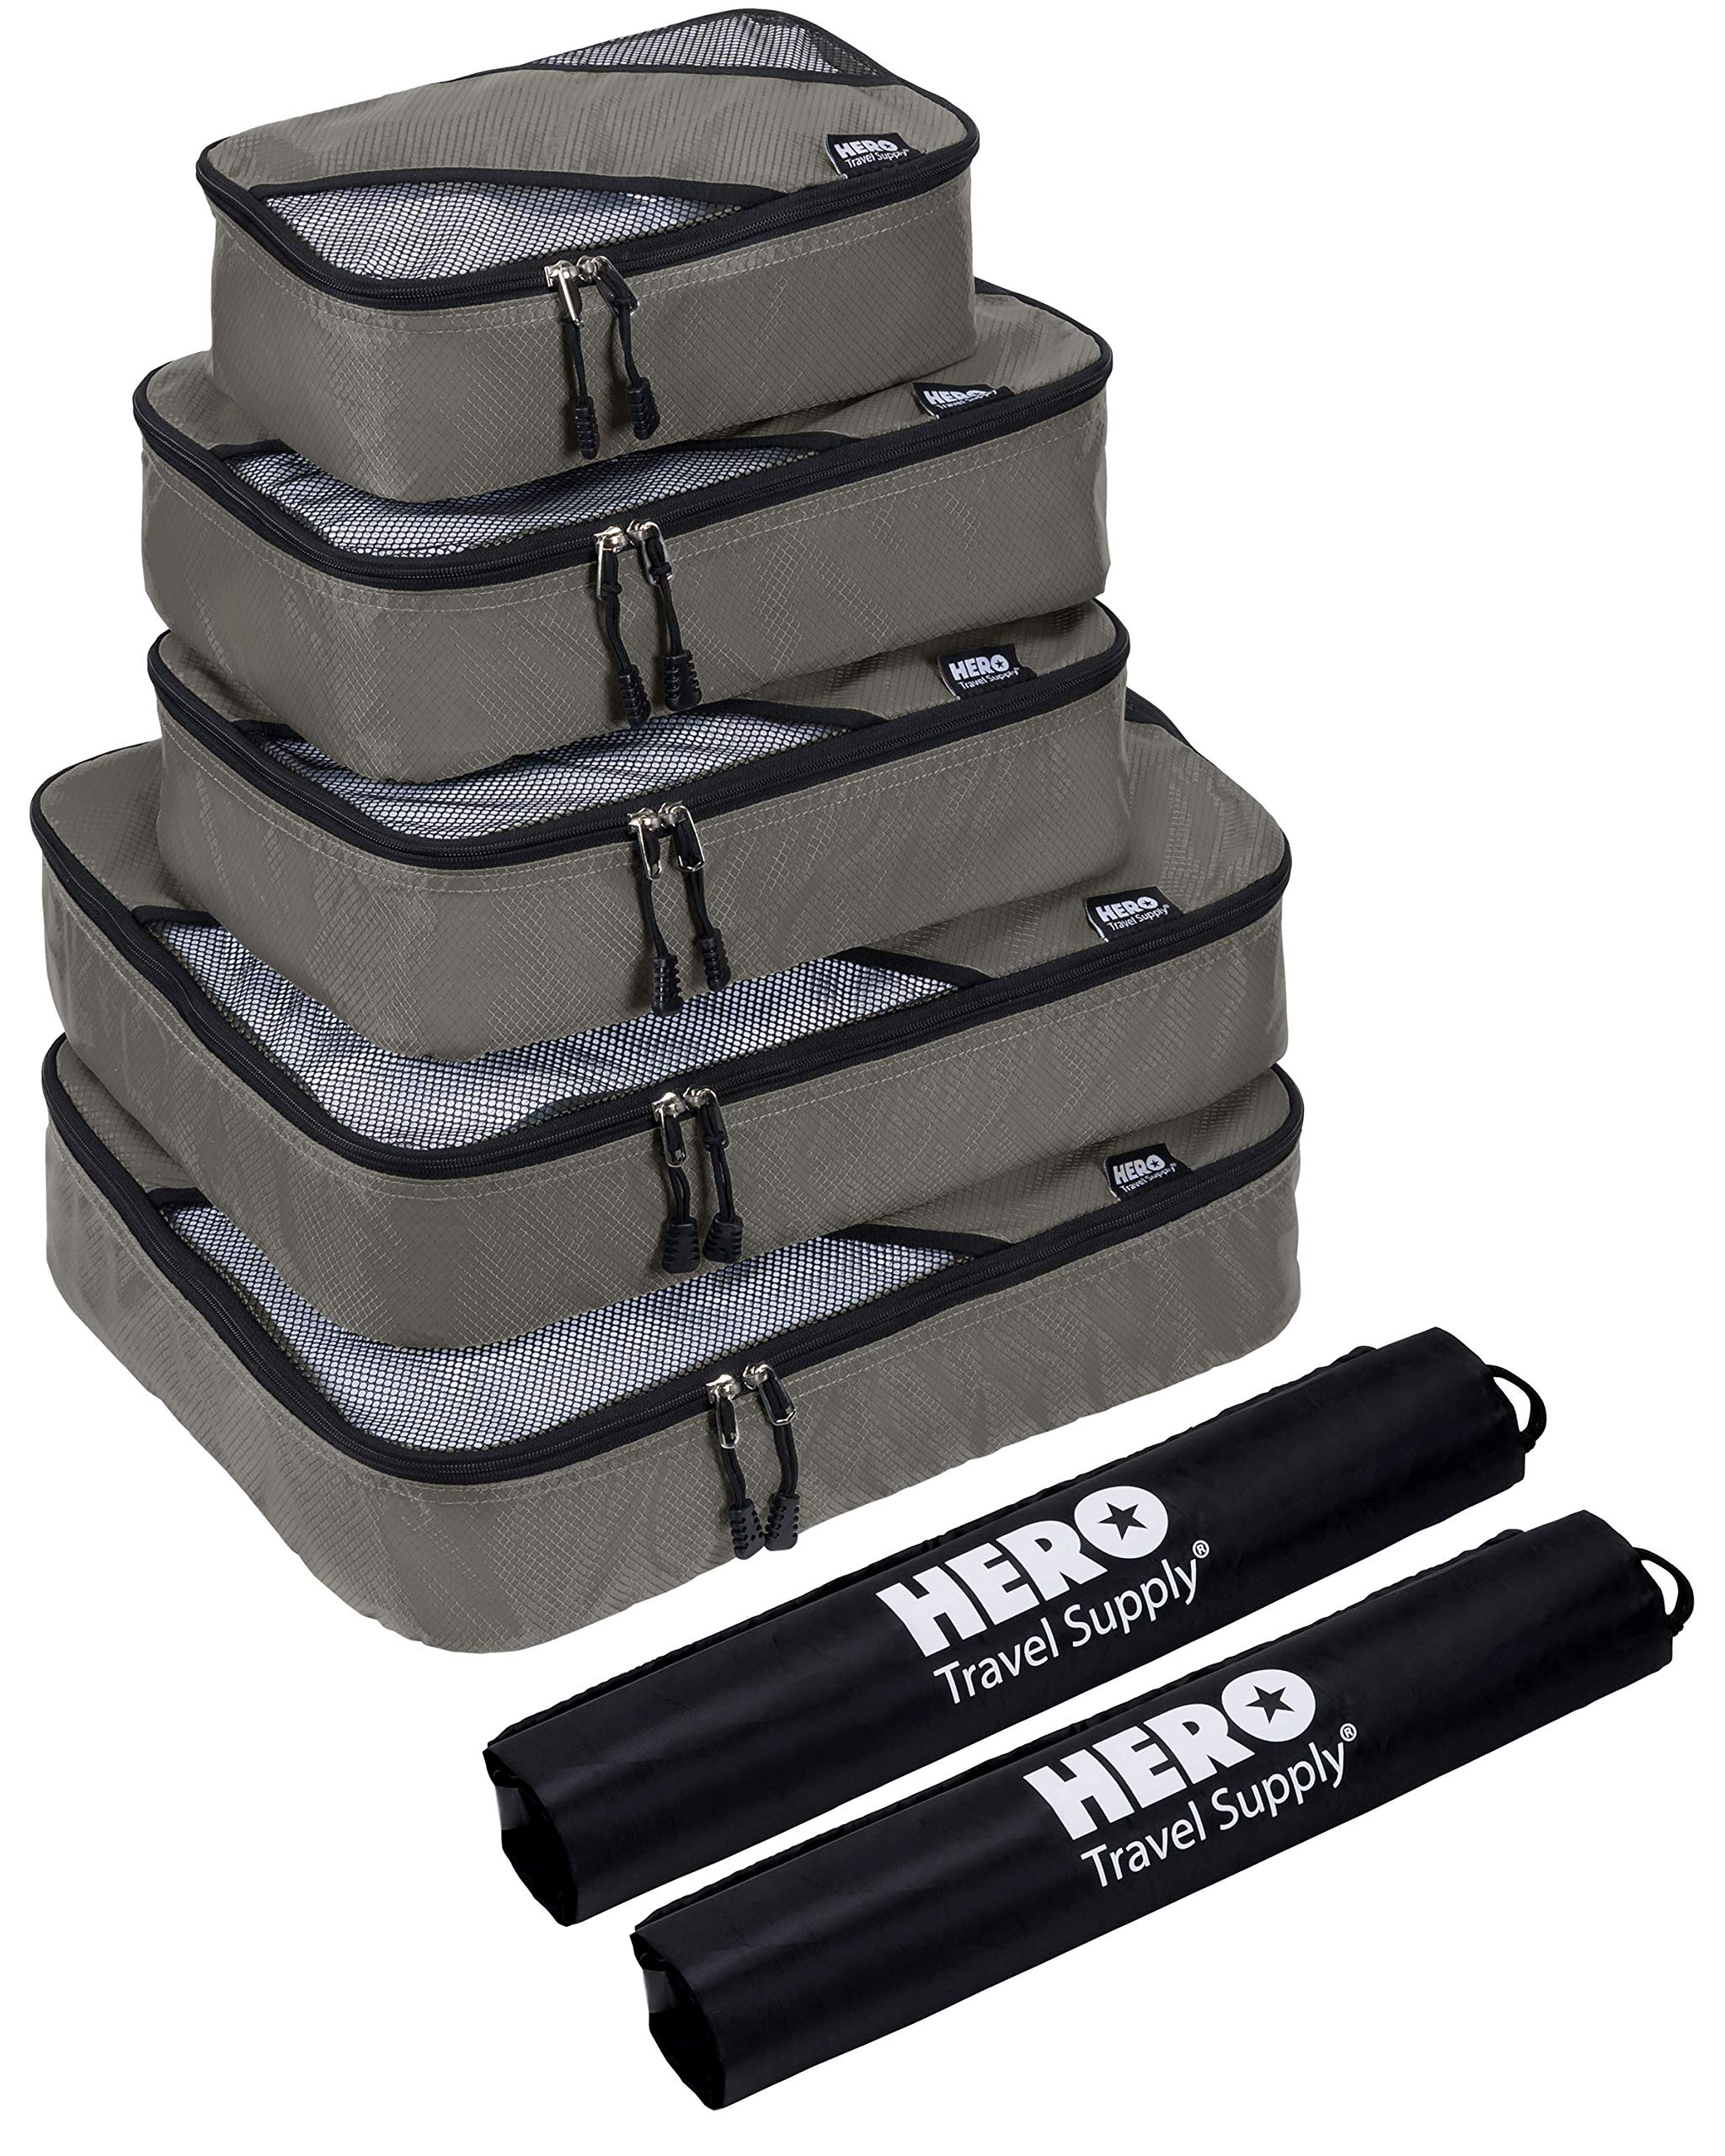 HERO Packing Cubes (5 Set) - Travel Organizers with 2 Bonus Laundry Bags - Includes Ebook on How To Pack A Suitcase by Asher & Lyric by Hero Travel Supply